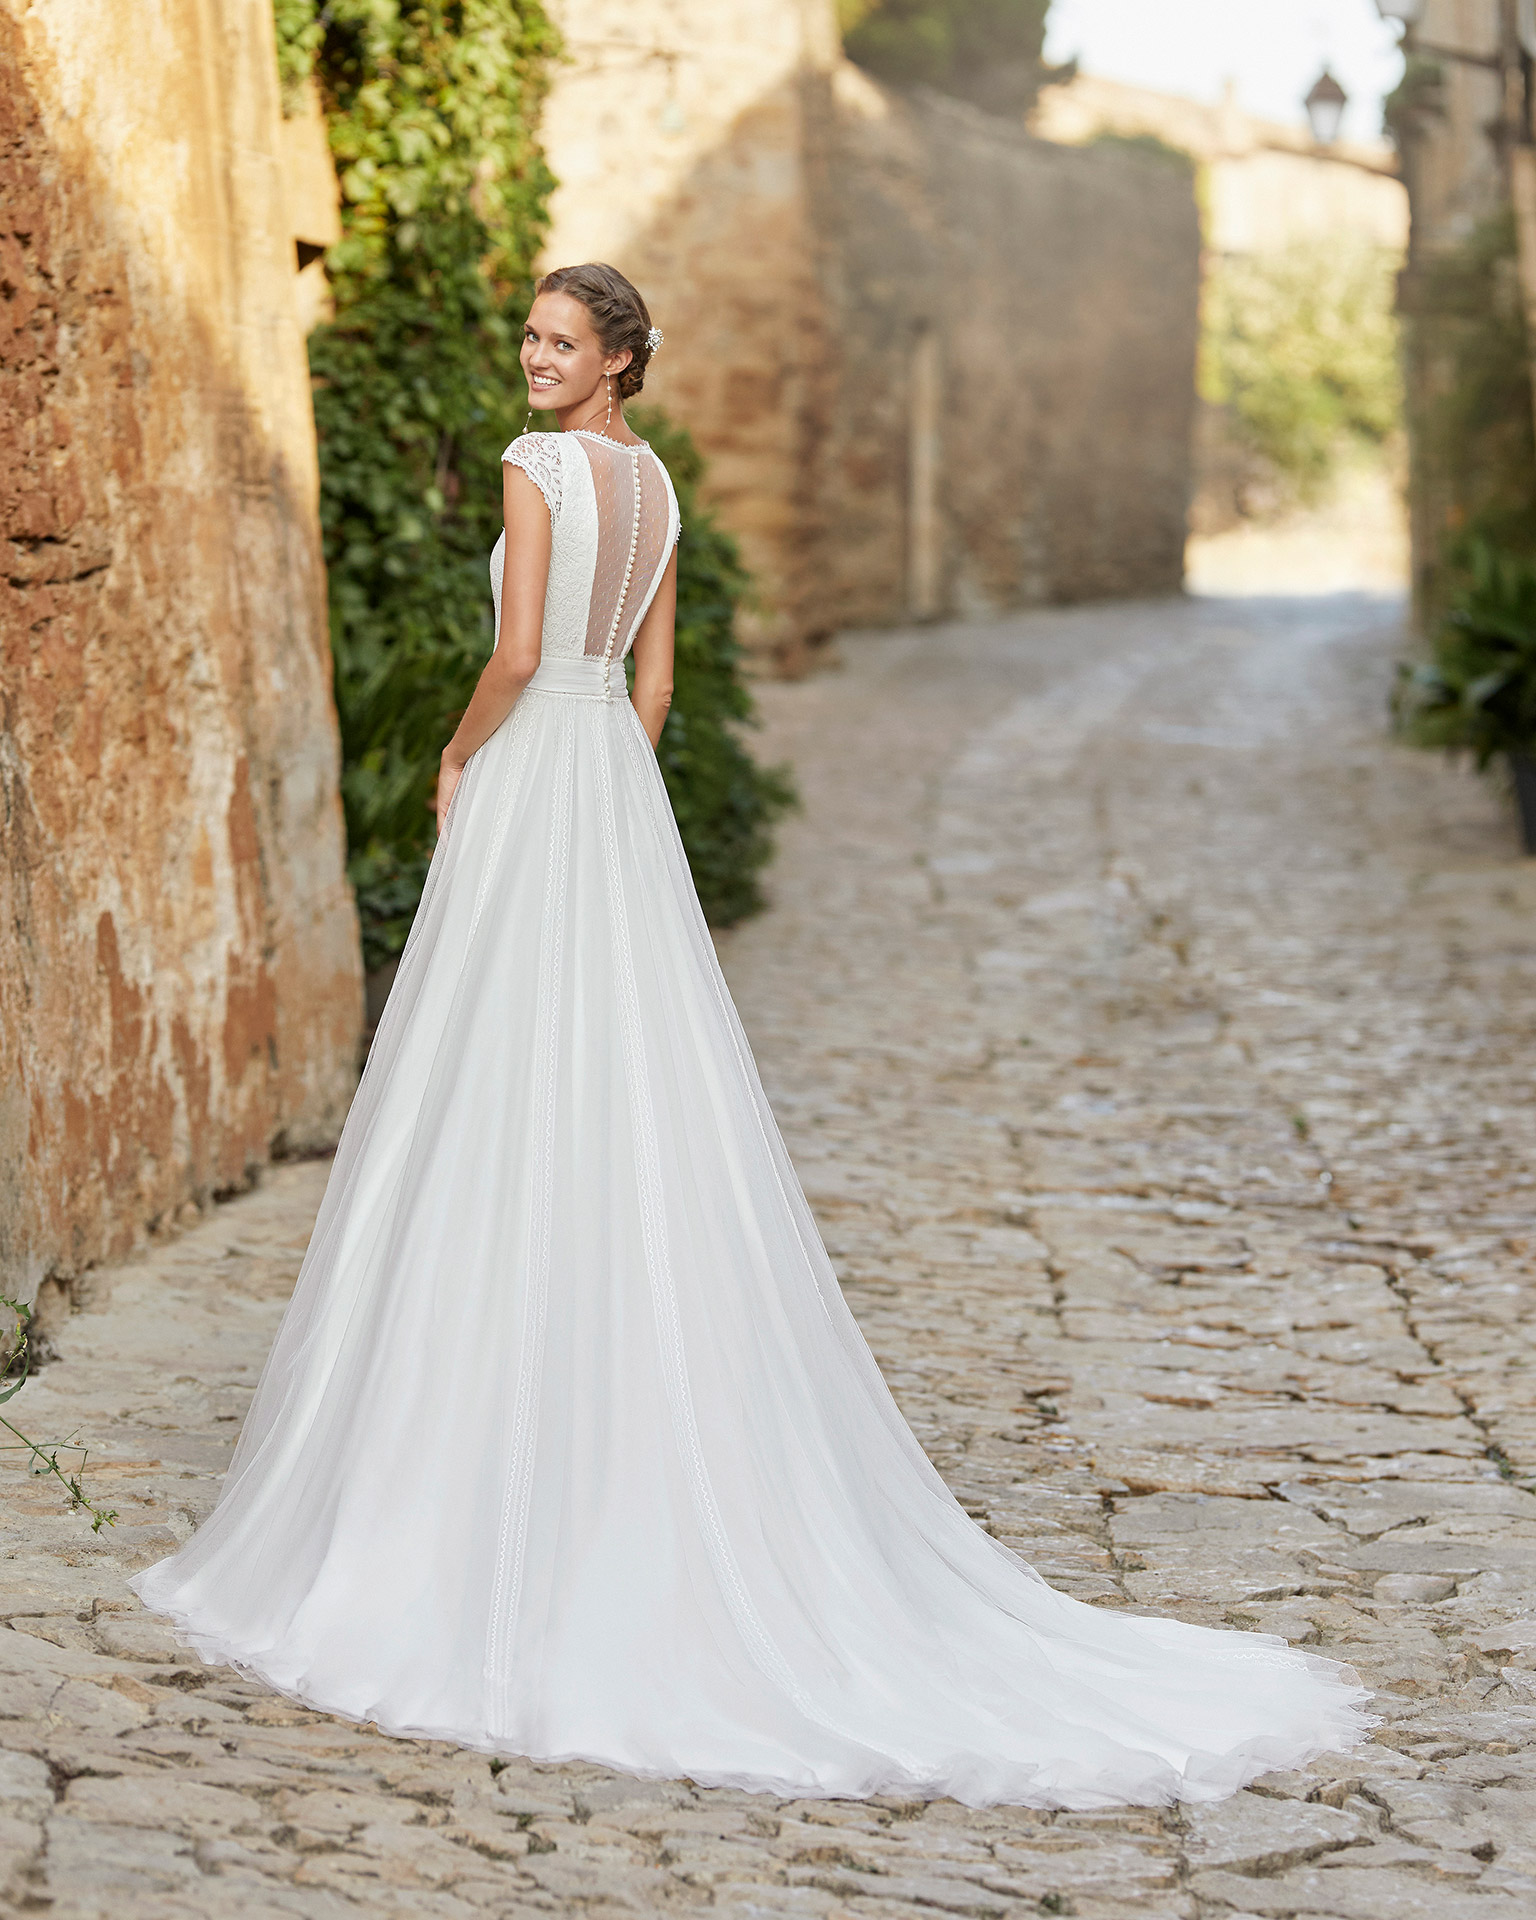 Delicate ballgown-style wedding dress with a lace bodice; with a V-neckline, a closed back with dot tulle and pearl buttons, raglan sleeves with lace and lace edging applied to the tulle skirt. 2022 ALMANOVIA Collection.